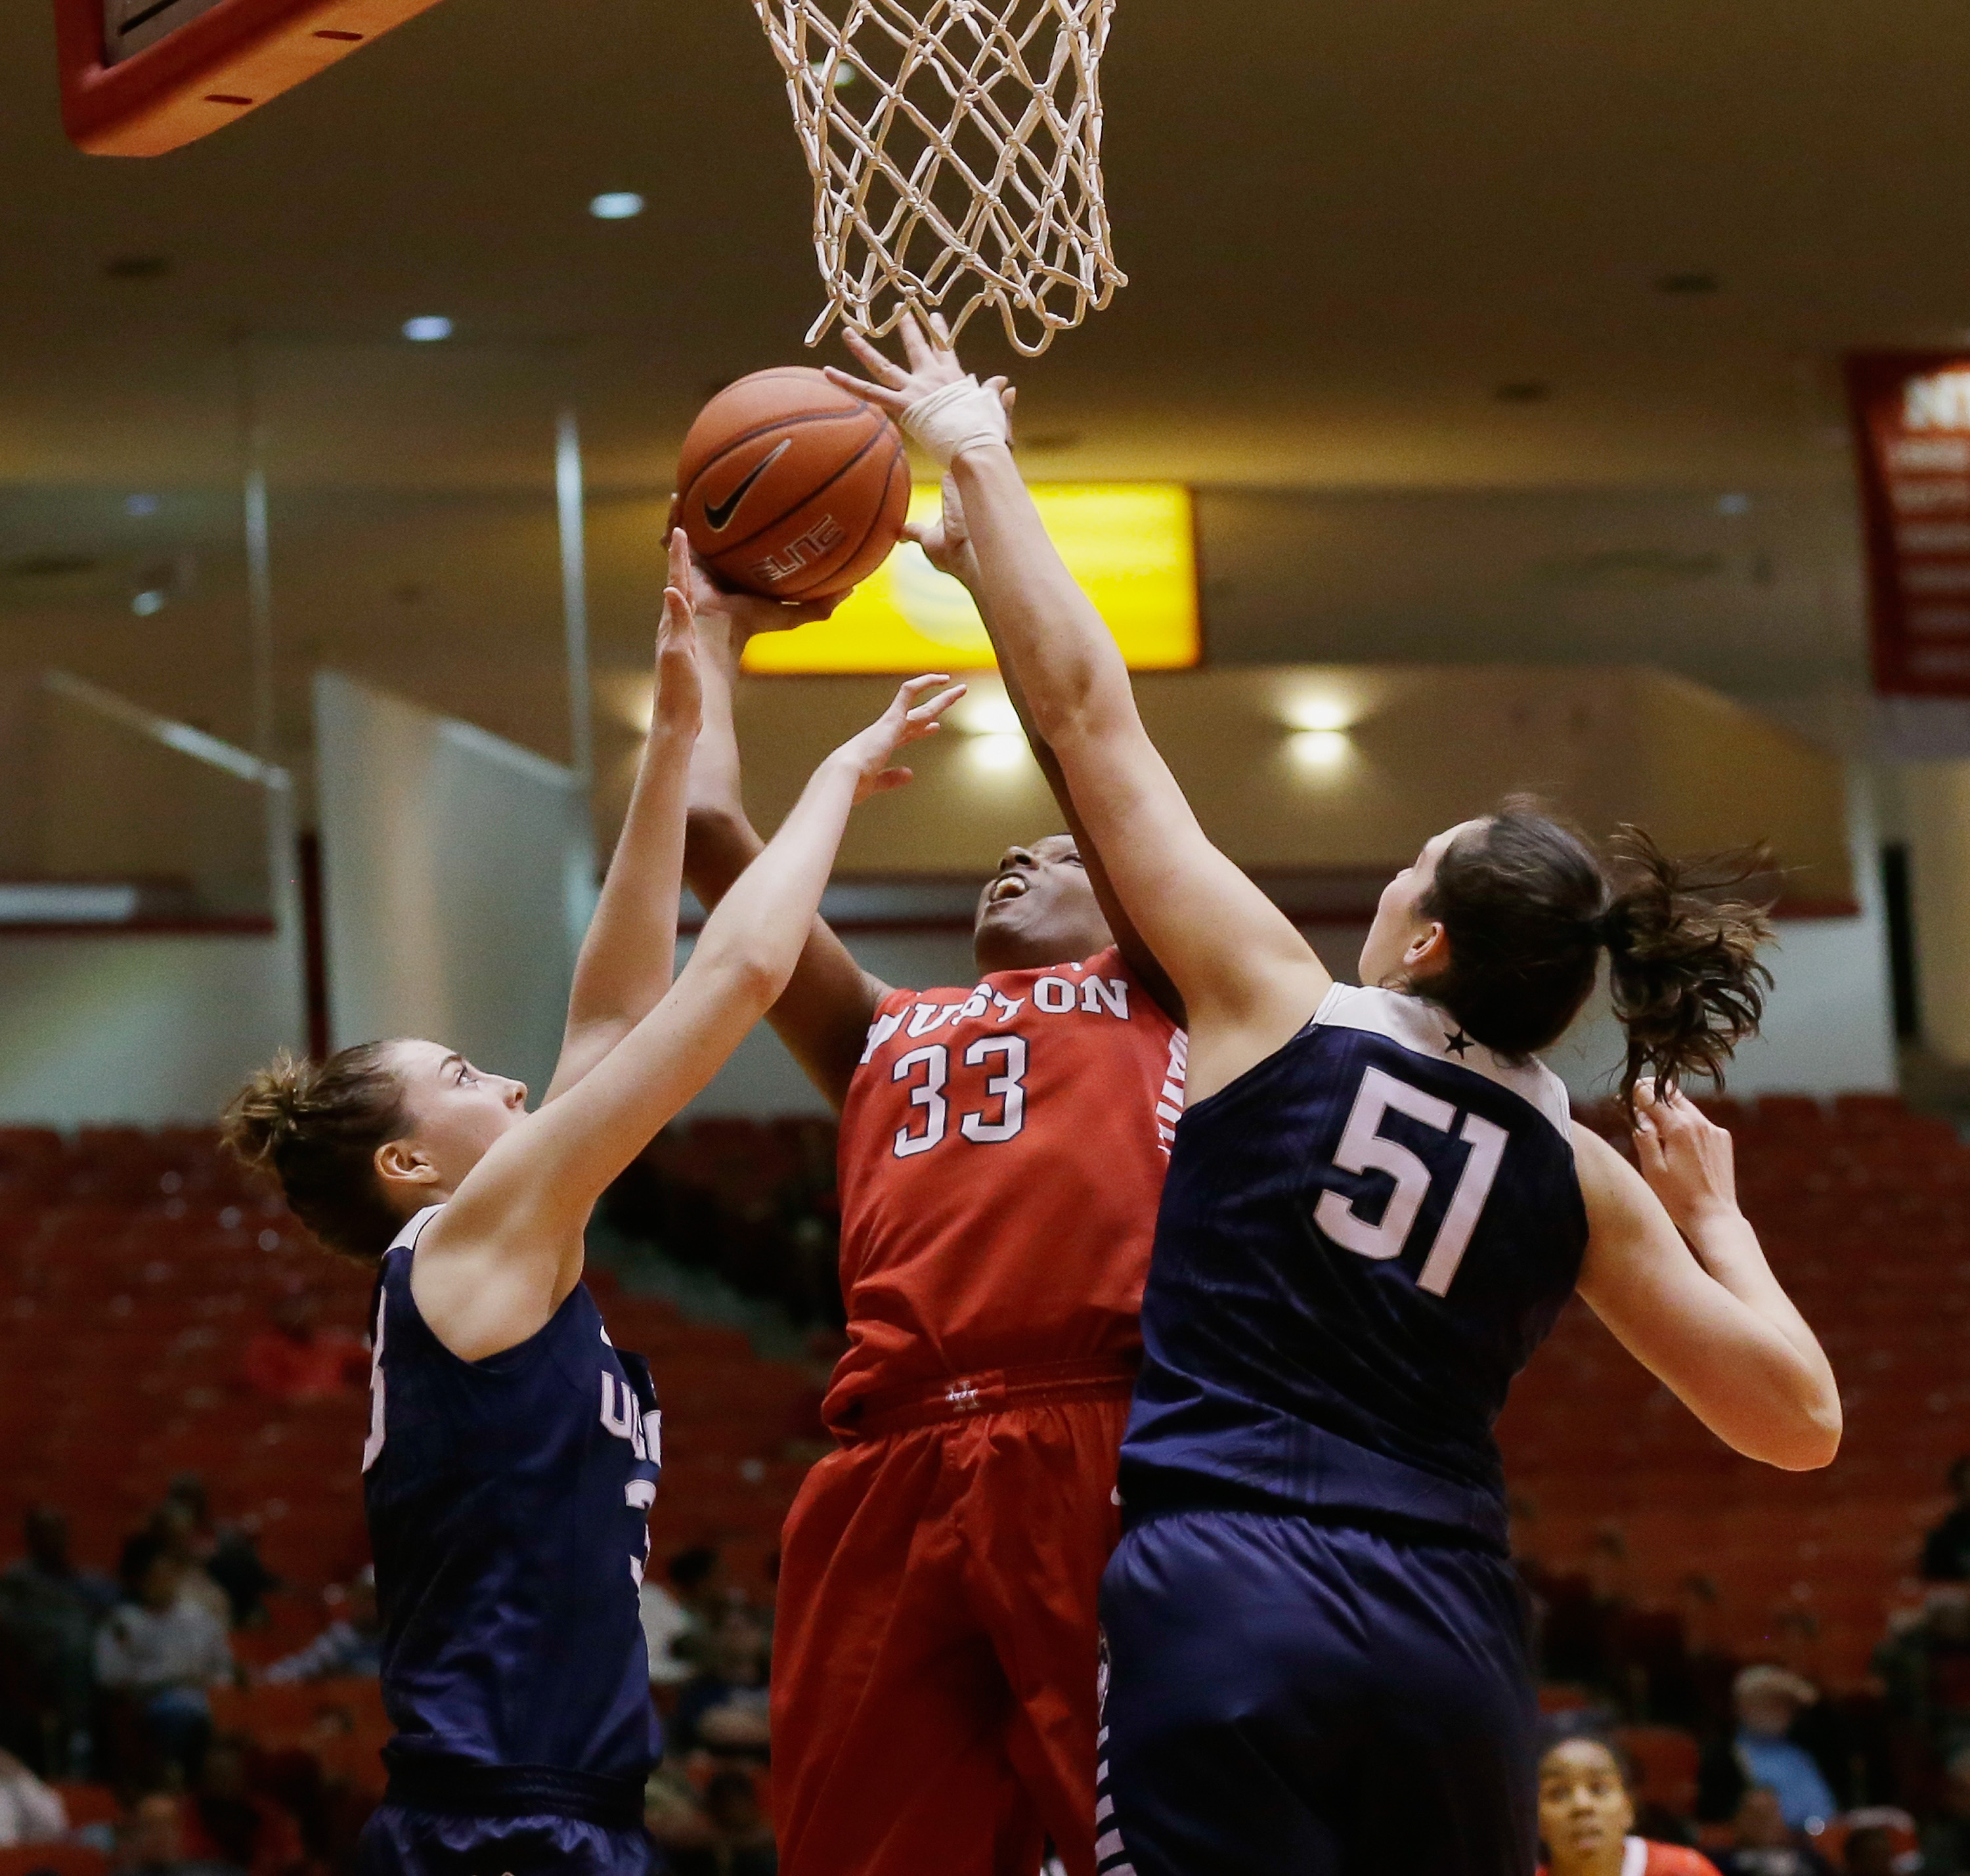 Houston forward Tyler Gilbert (33) shoots over Connecticut guard/forward Katie Lou Samuelson, left, and center Natalie Butler (51) during the second half of an NCAA college basketball game Friday, Jan. 8, 2016, in Houston. Connecticut won 76-37. (AP Photo